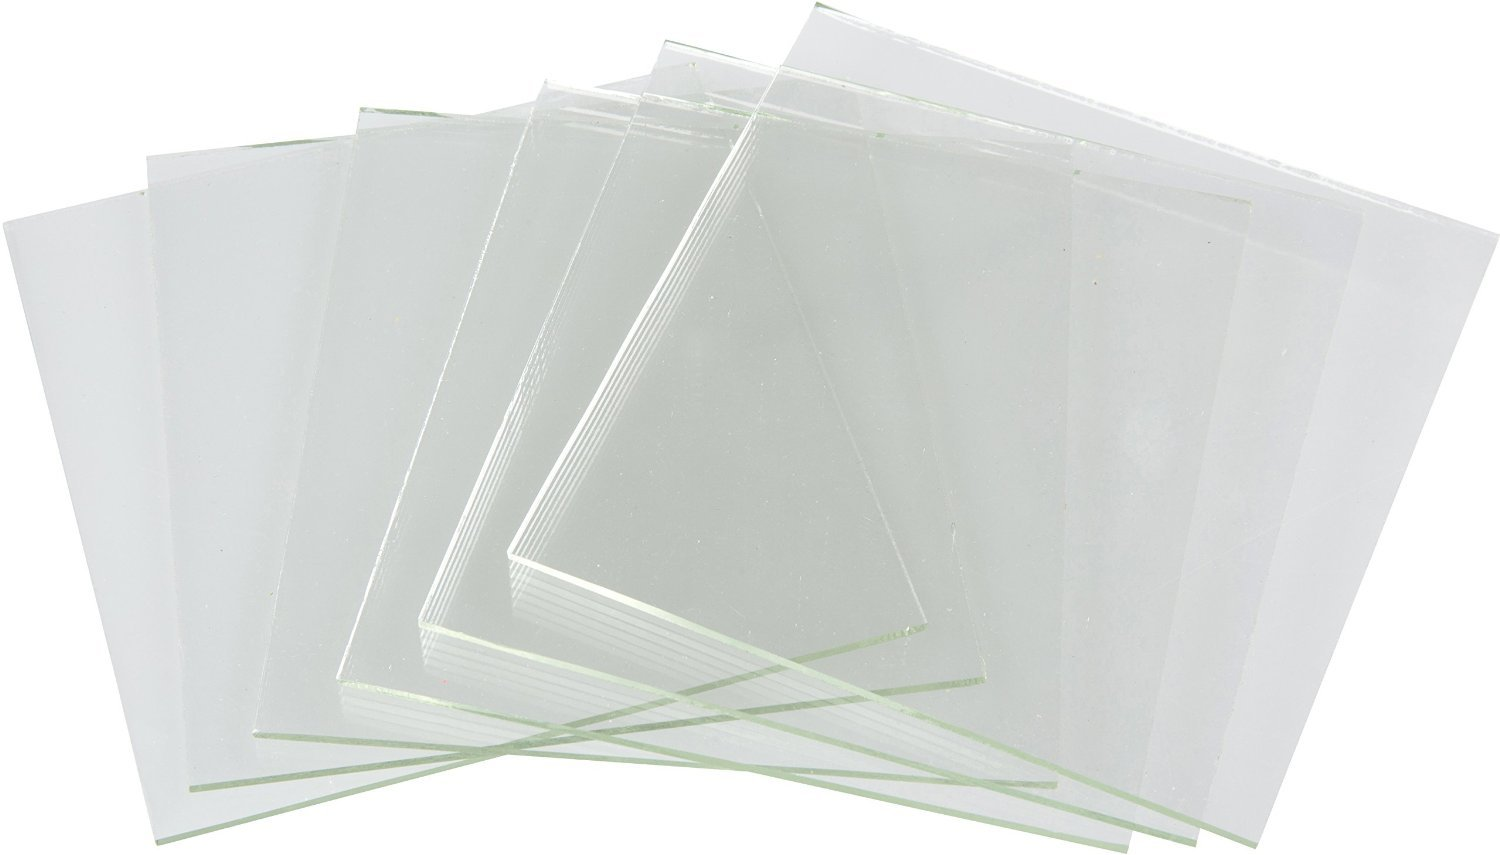 System 96-2 Inch Clear Fusible Glass Squares, 96 COE- 6 Pack iDichroic 4336904056